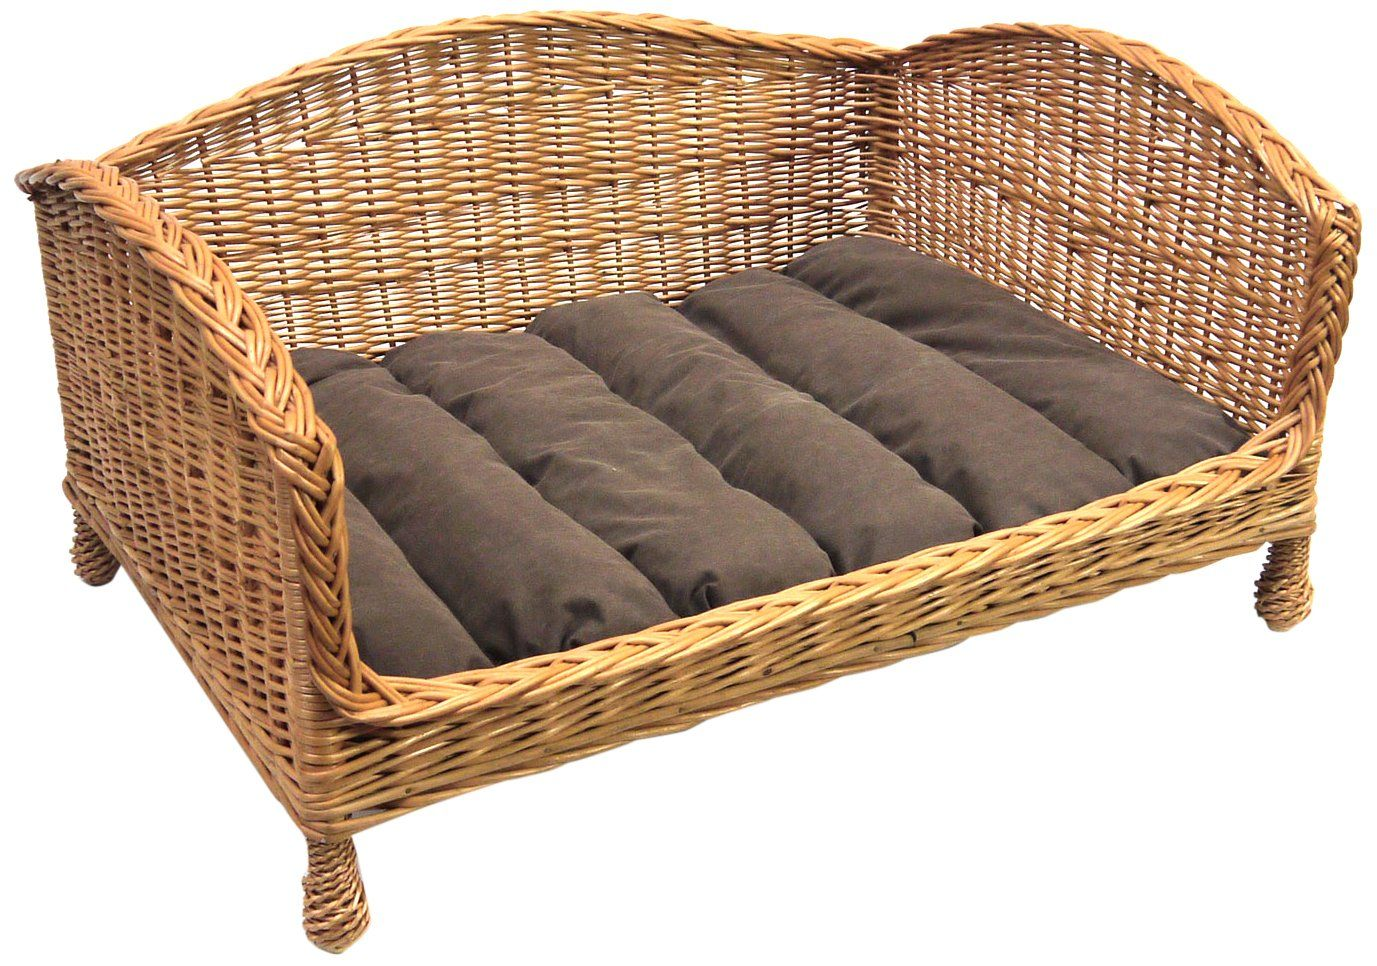 Prestige Wicker Pet Bed Settee with Cushion. Raised to